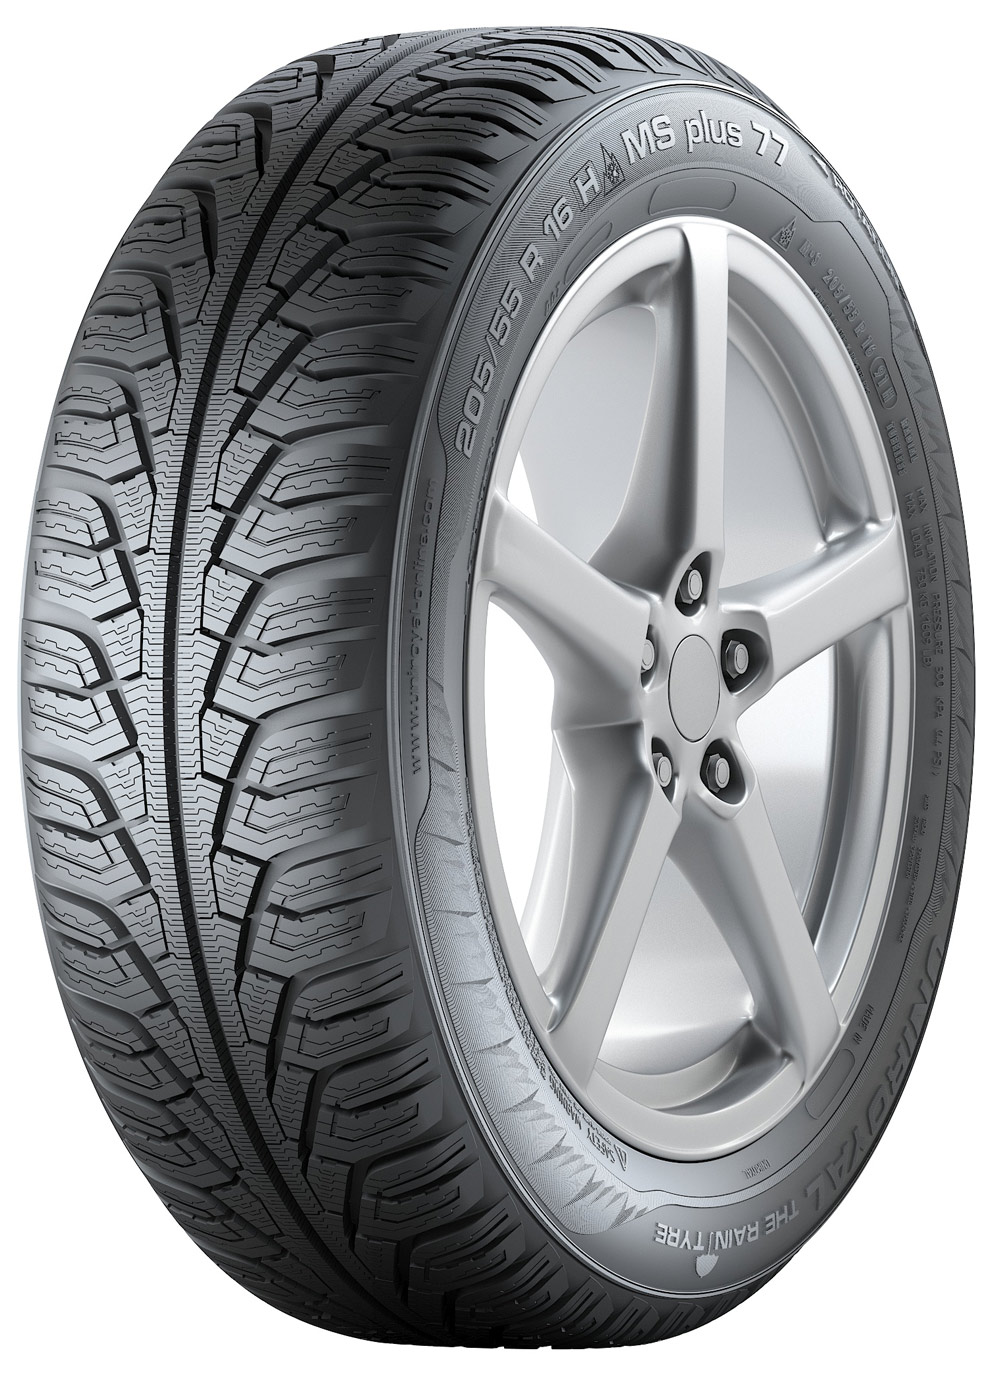 UNIROYAL MS PLUS 77 195/55 R 15